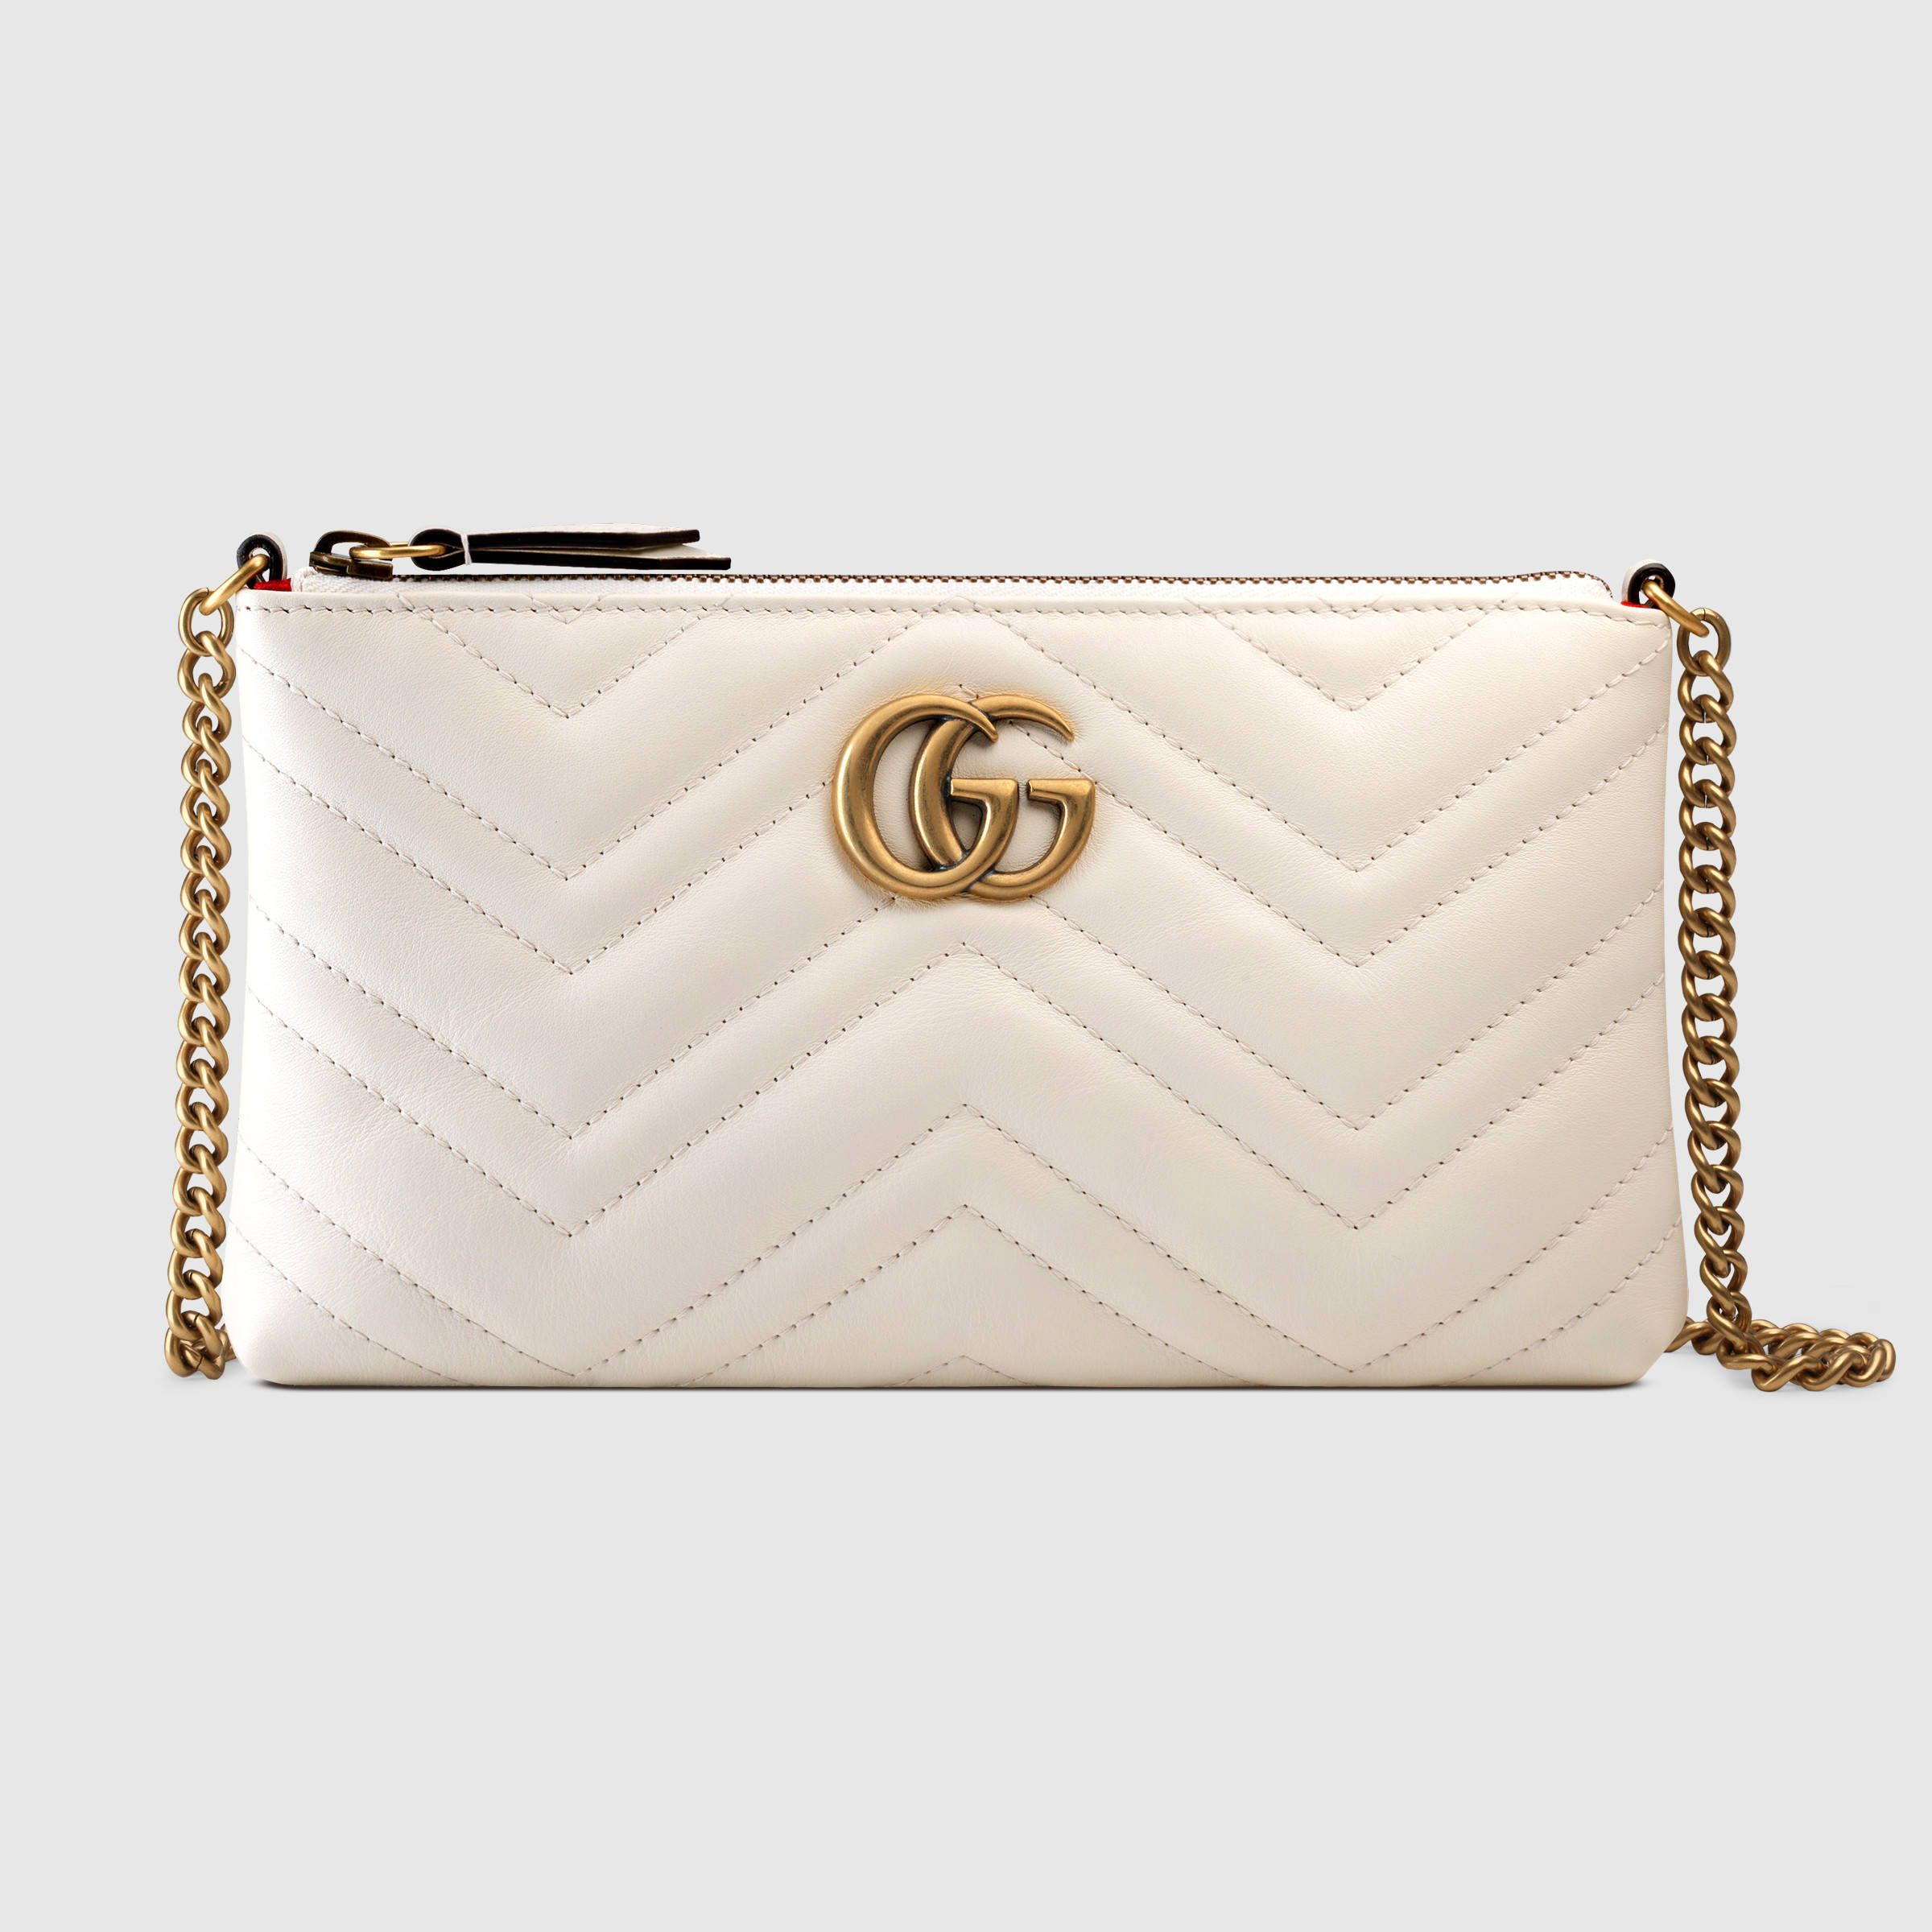 617b7ab1d92 Gucci GG Marmont mini chain bag